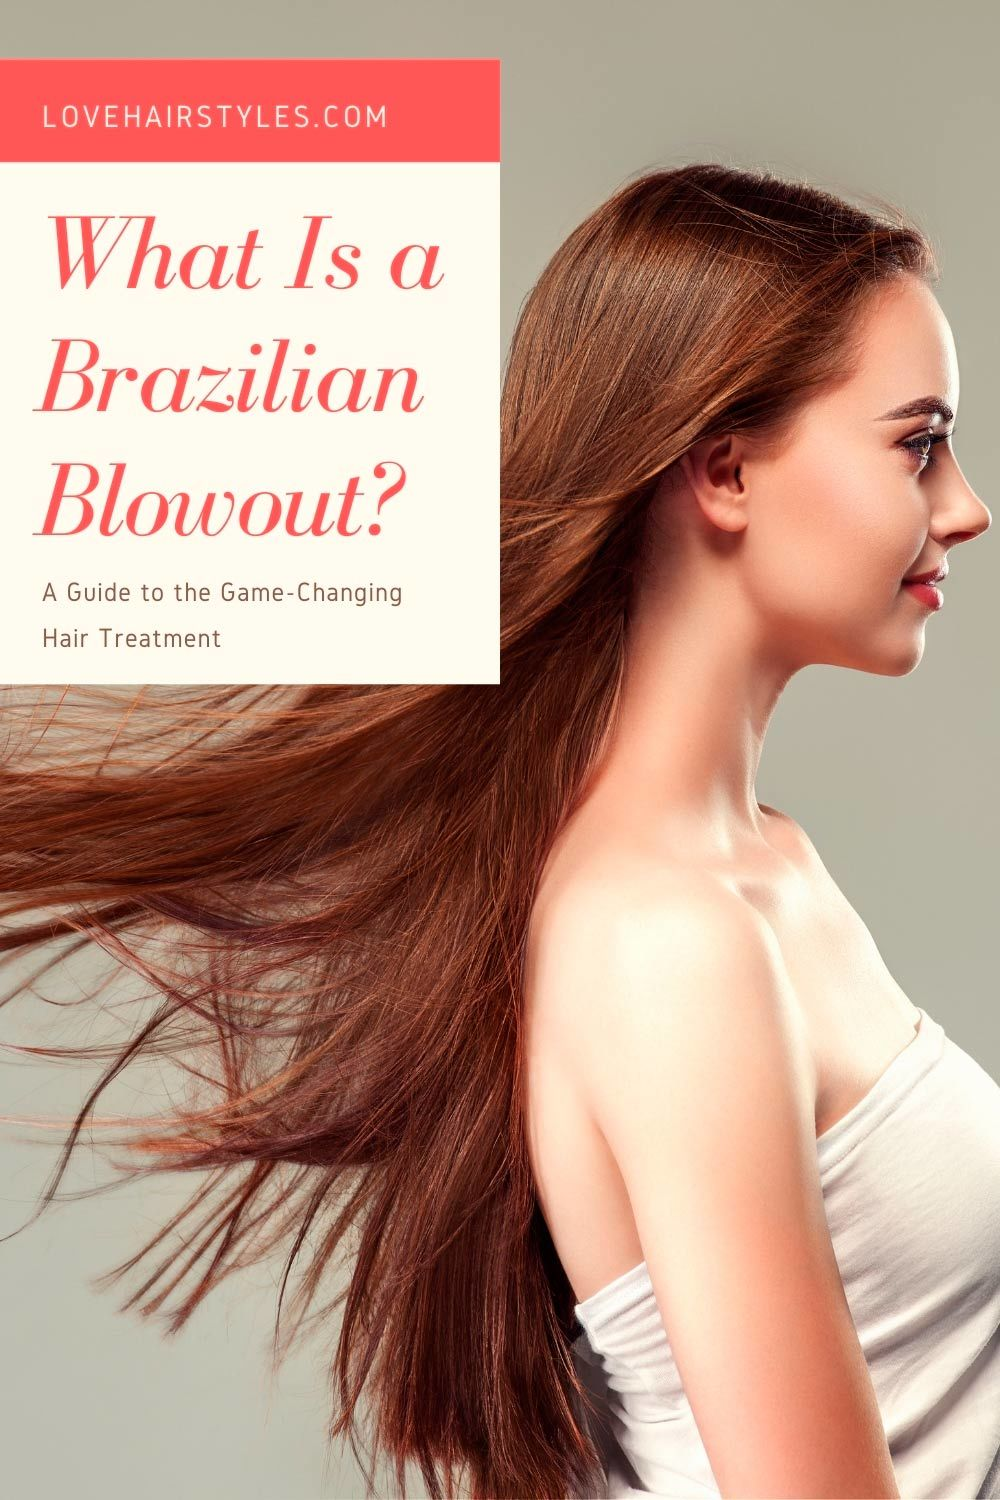 What Are Brazilian Blowouts?